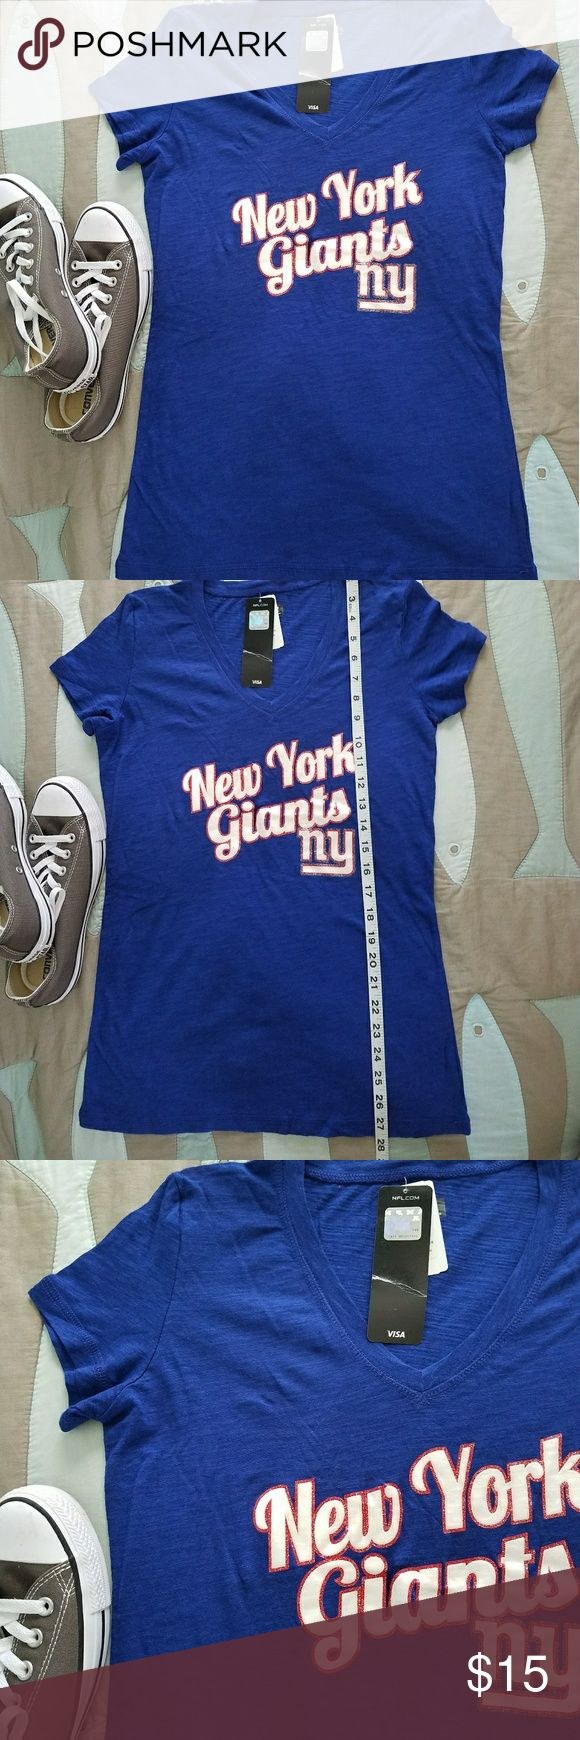 New NFL apparel New York Giants tee shirt Brand new with tags official NFL team apparel in size small New York Giants graphic tee. nfl Tops Tees - Short Sleeve